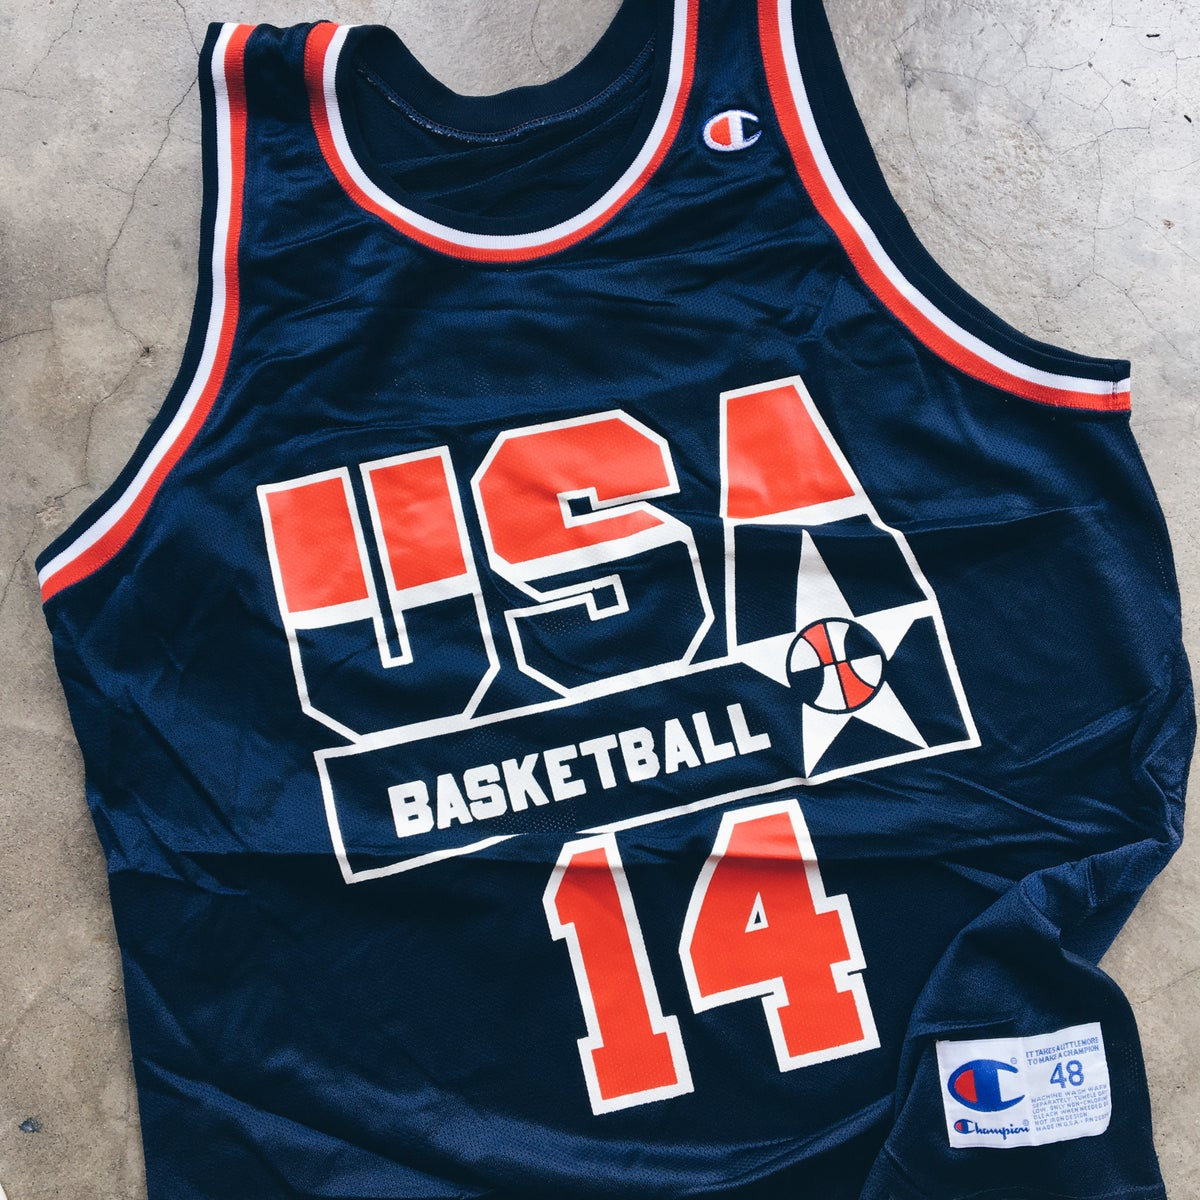 Image of Original 1992 Dream Team Champion USA Alonzo Mourning Jersey.